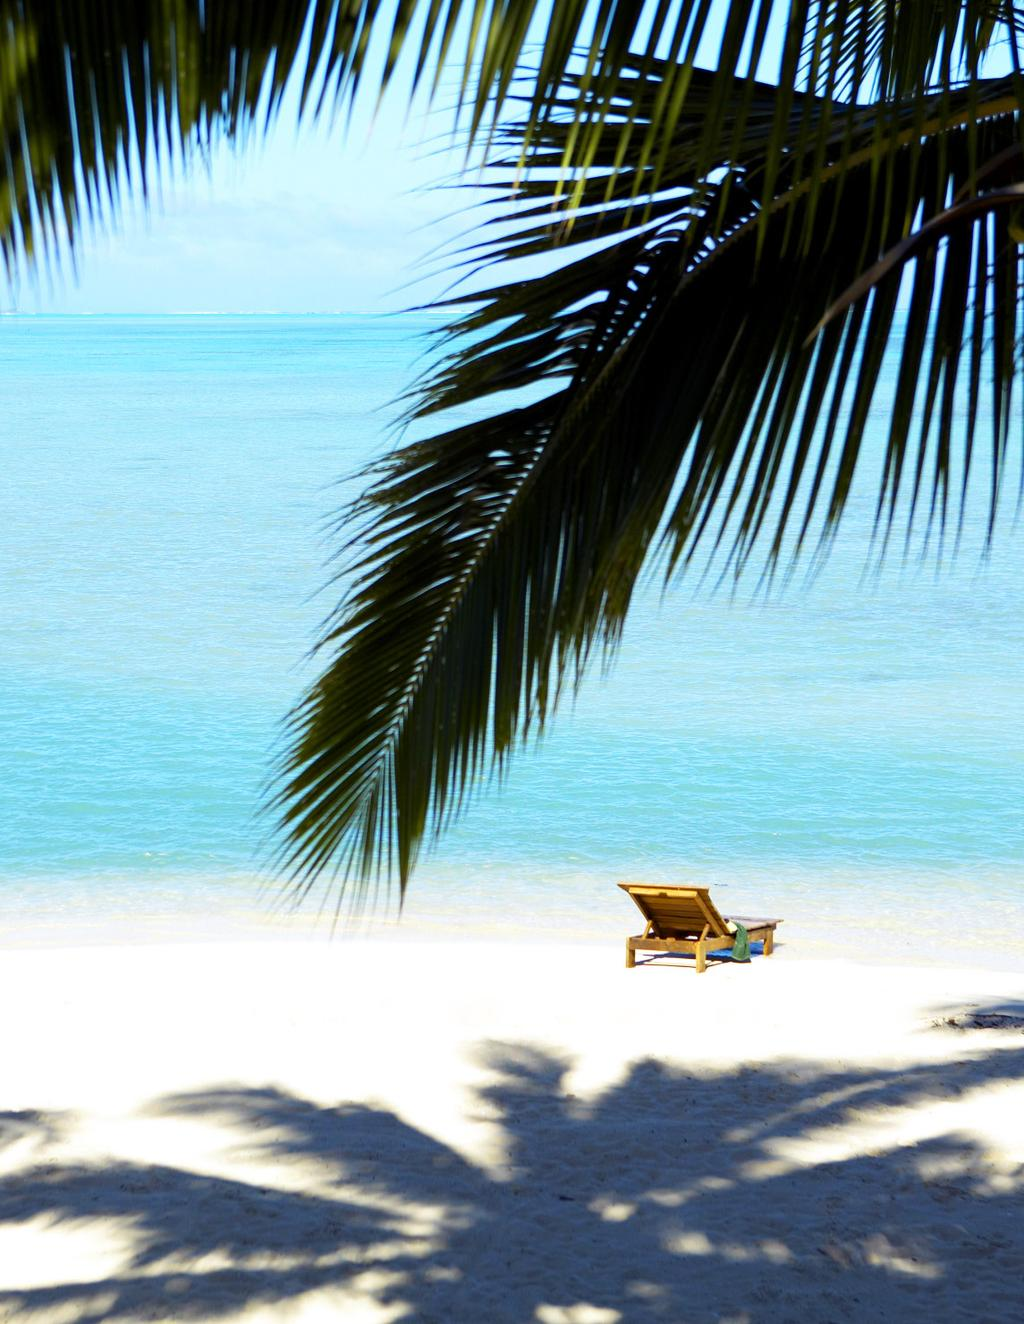 Our Services PRHG operates its resorts and hotels from its Corporate Head Office in Rarotonga, Cook Islands.